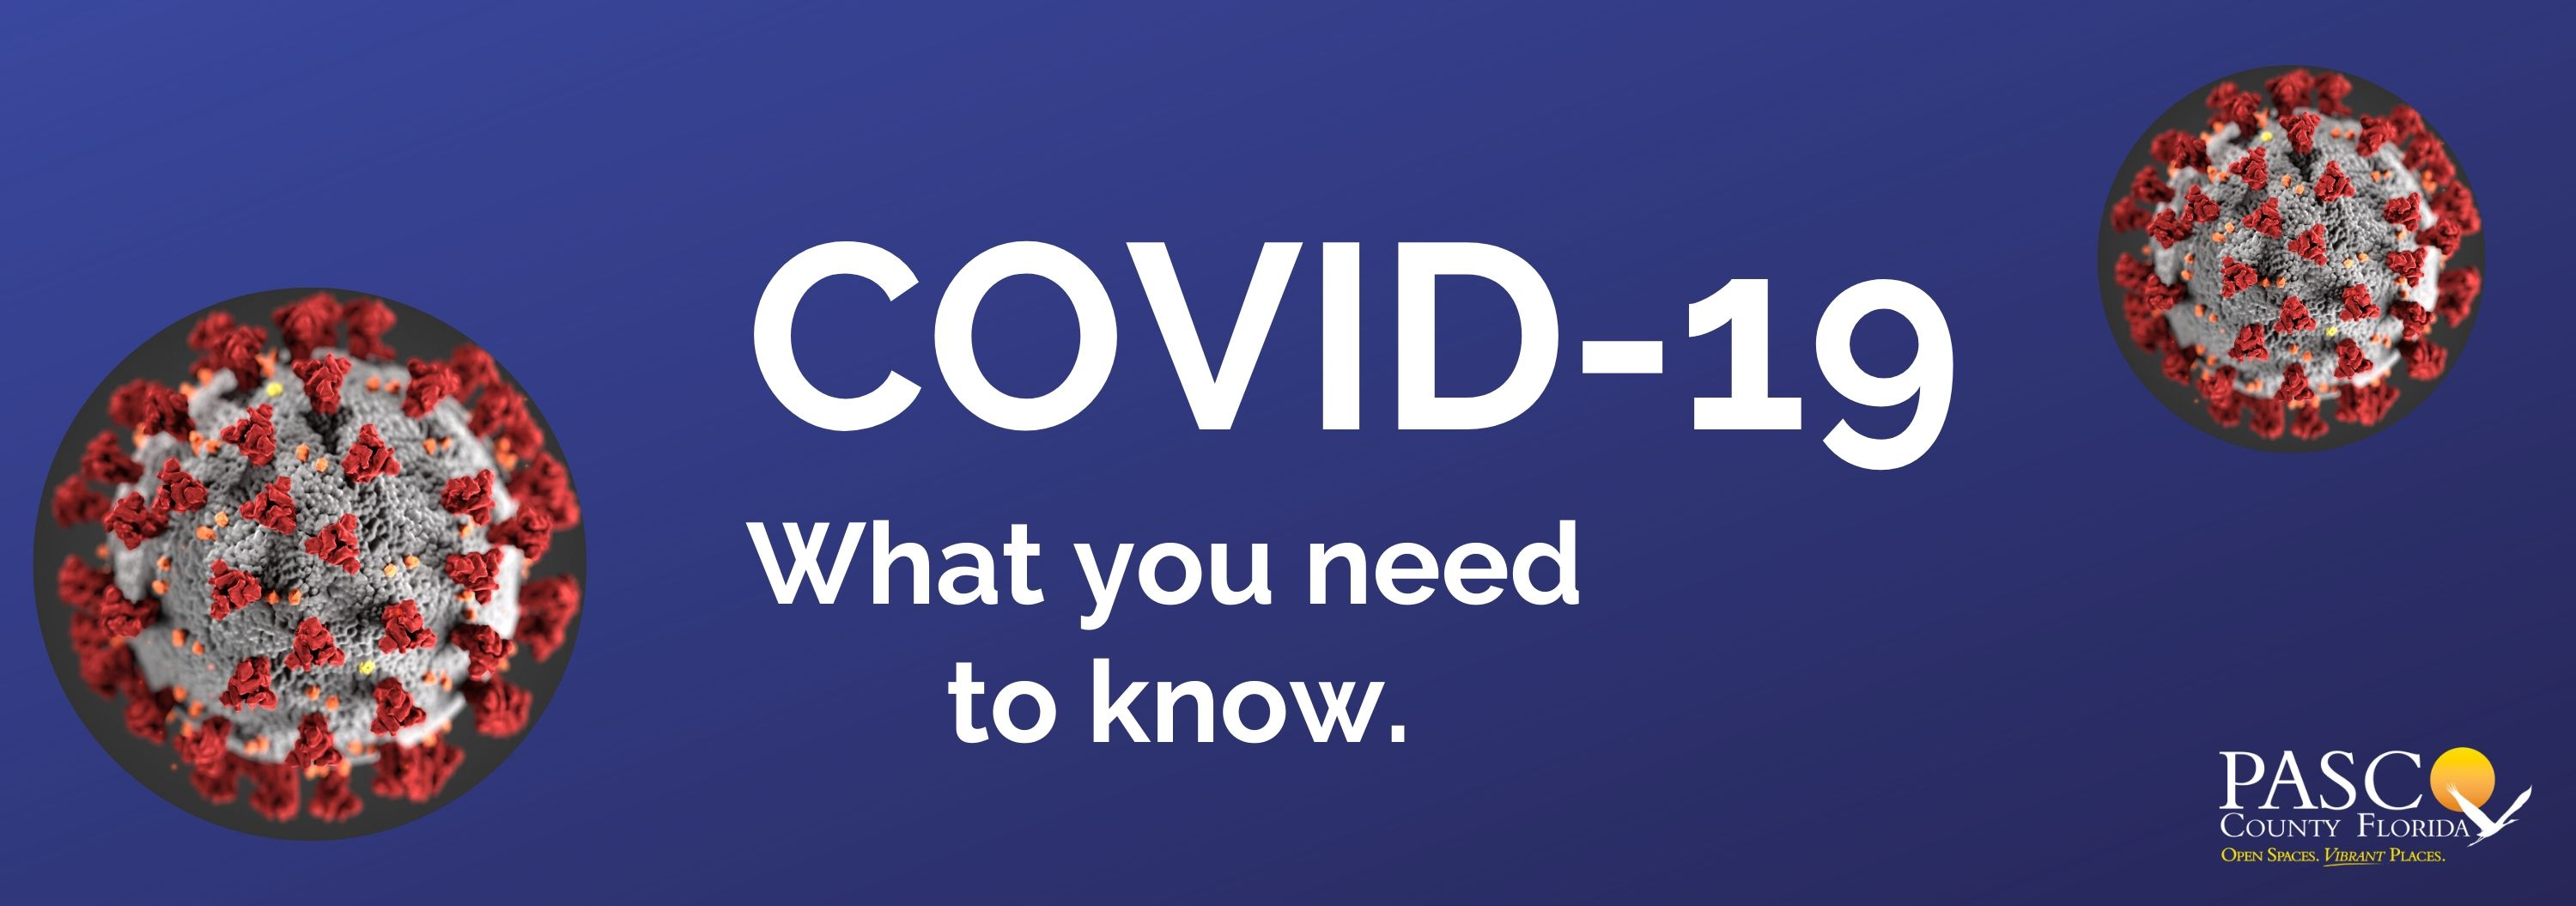 COVID 19 Updates Banner